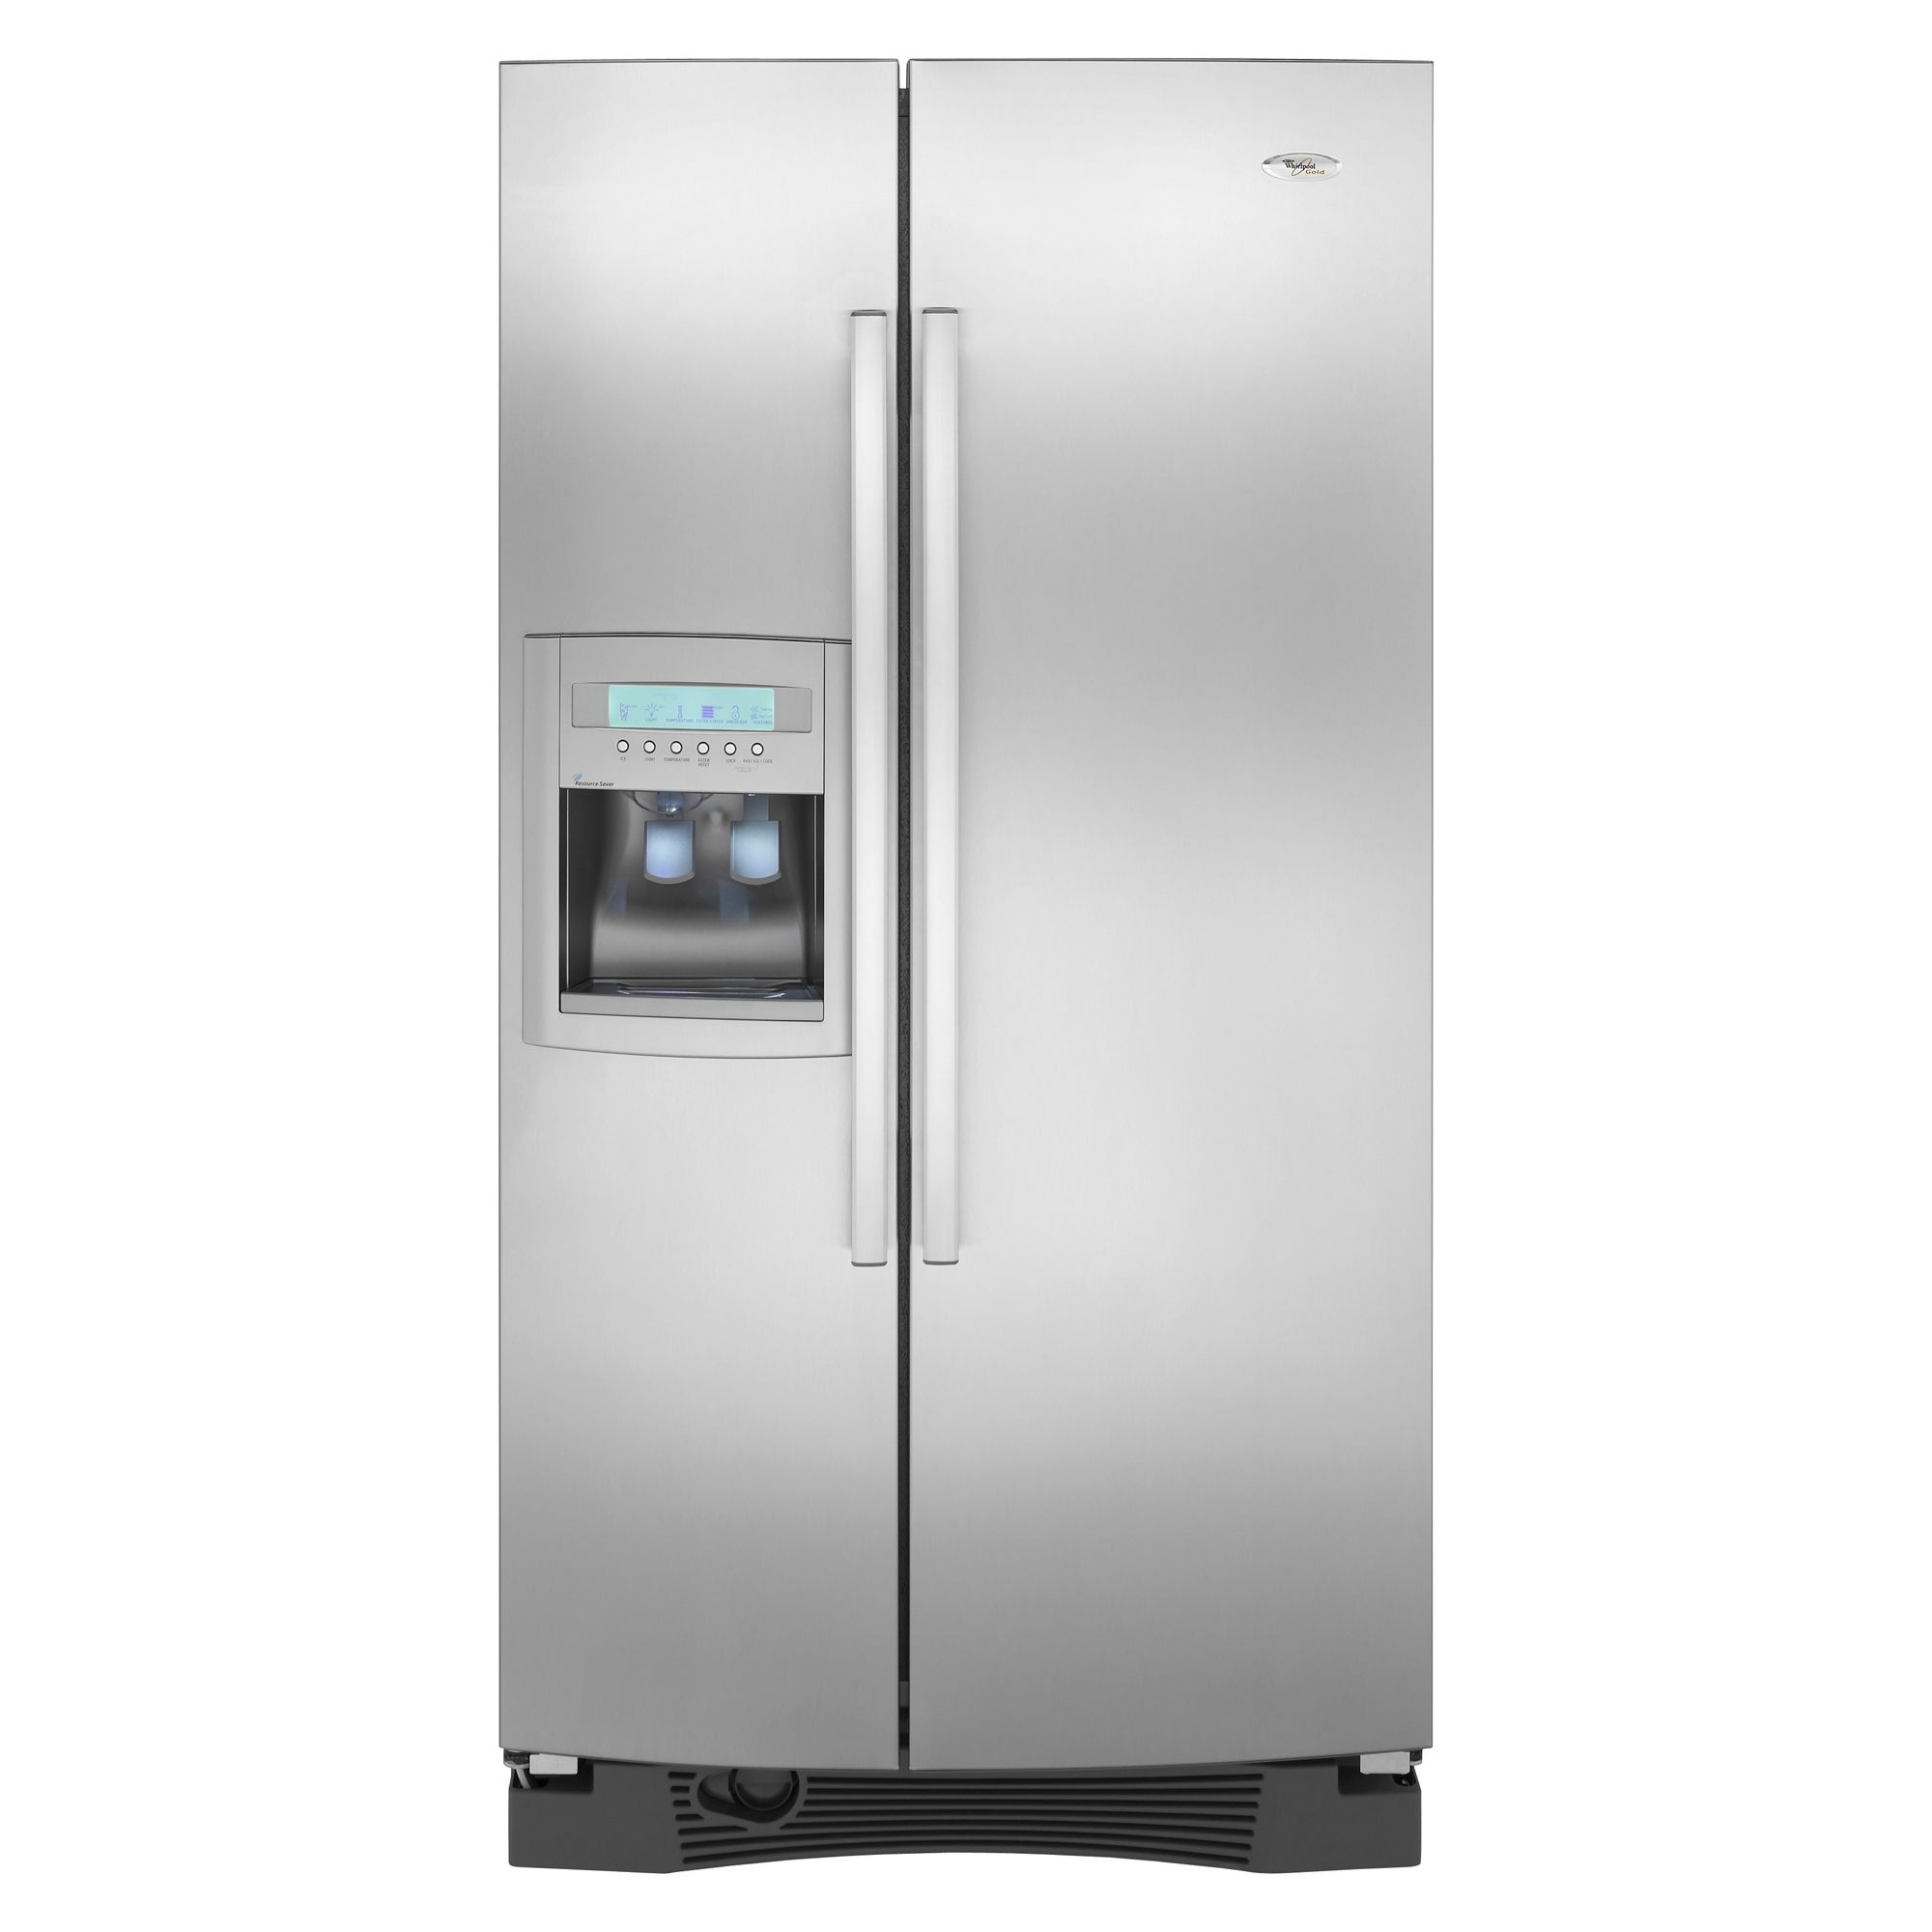 Whirlpool Gold 25.6 cu. ft. Side-By-Side Refrigerator w/ In-Door-Ice® Plus  (GS5VHAXW)